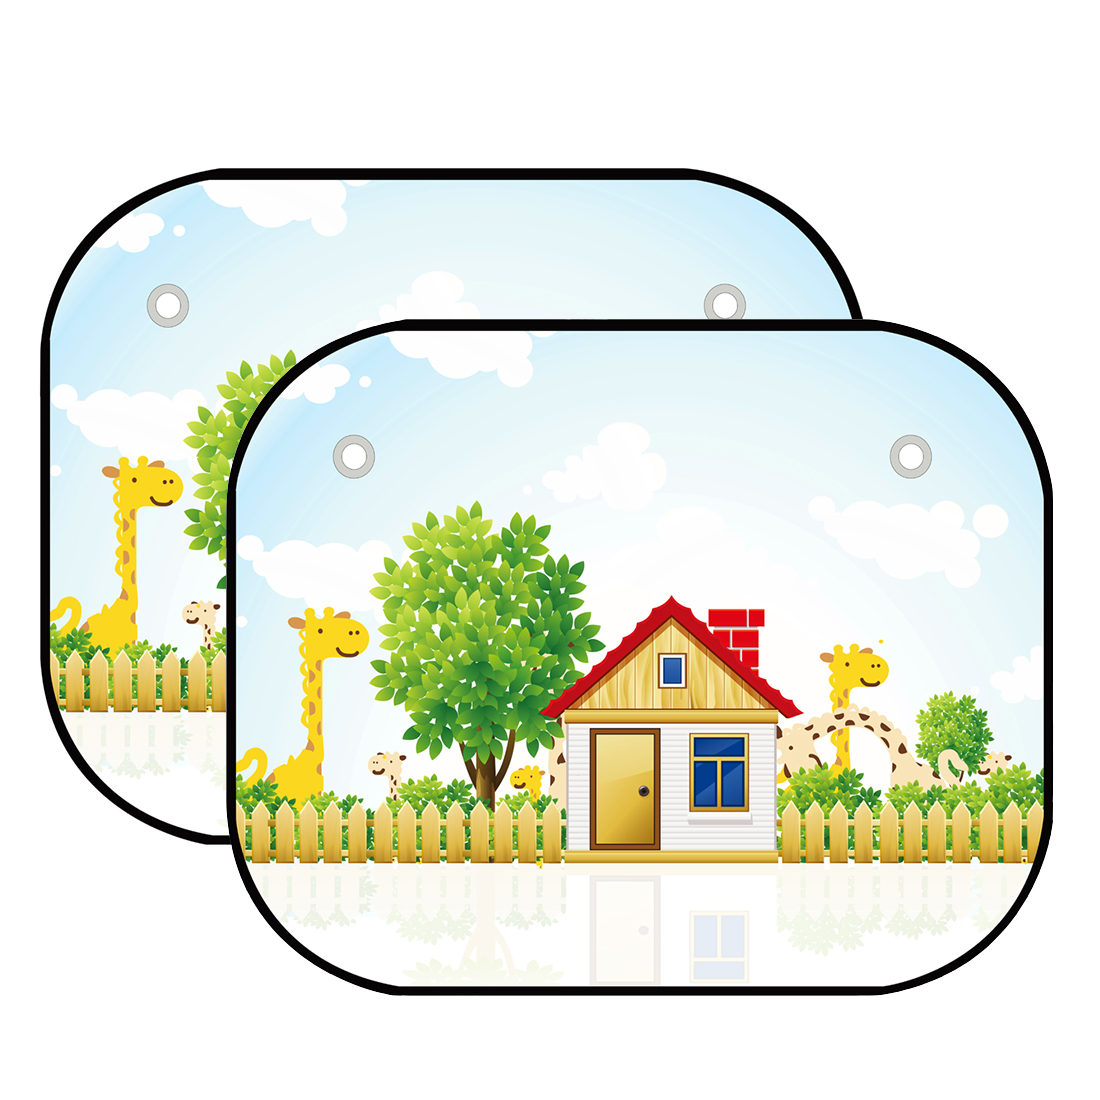 JOYREN Authorized 2 Pcs Baby Car Side Windows Sun Shades - Auto Sunshades Protector with Cartoon House Pattern to Block Harmful UV Rays and Heat